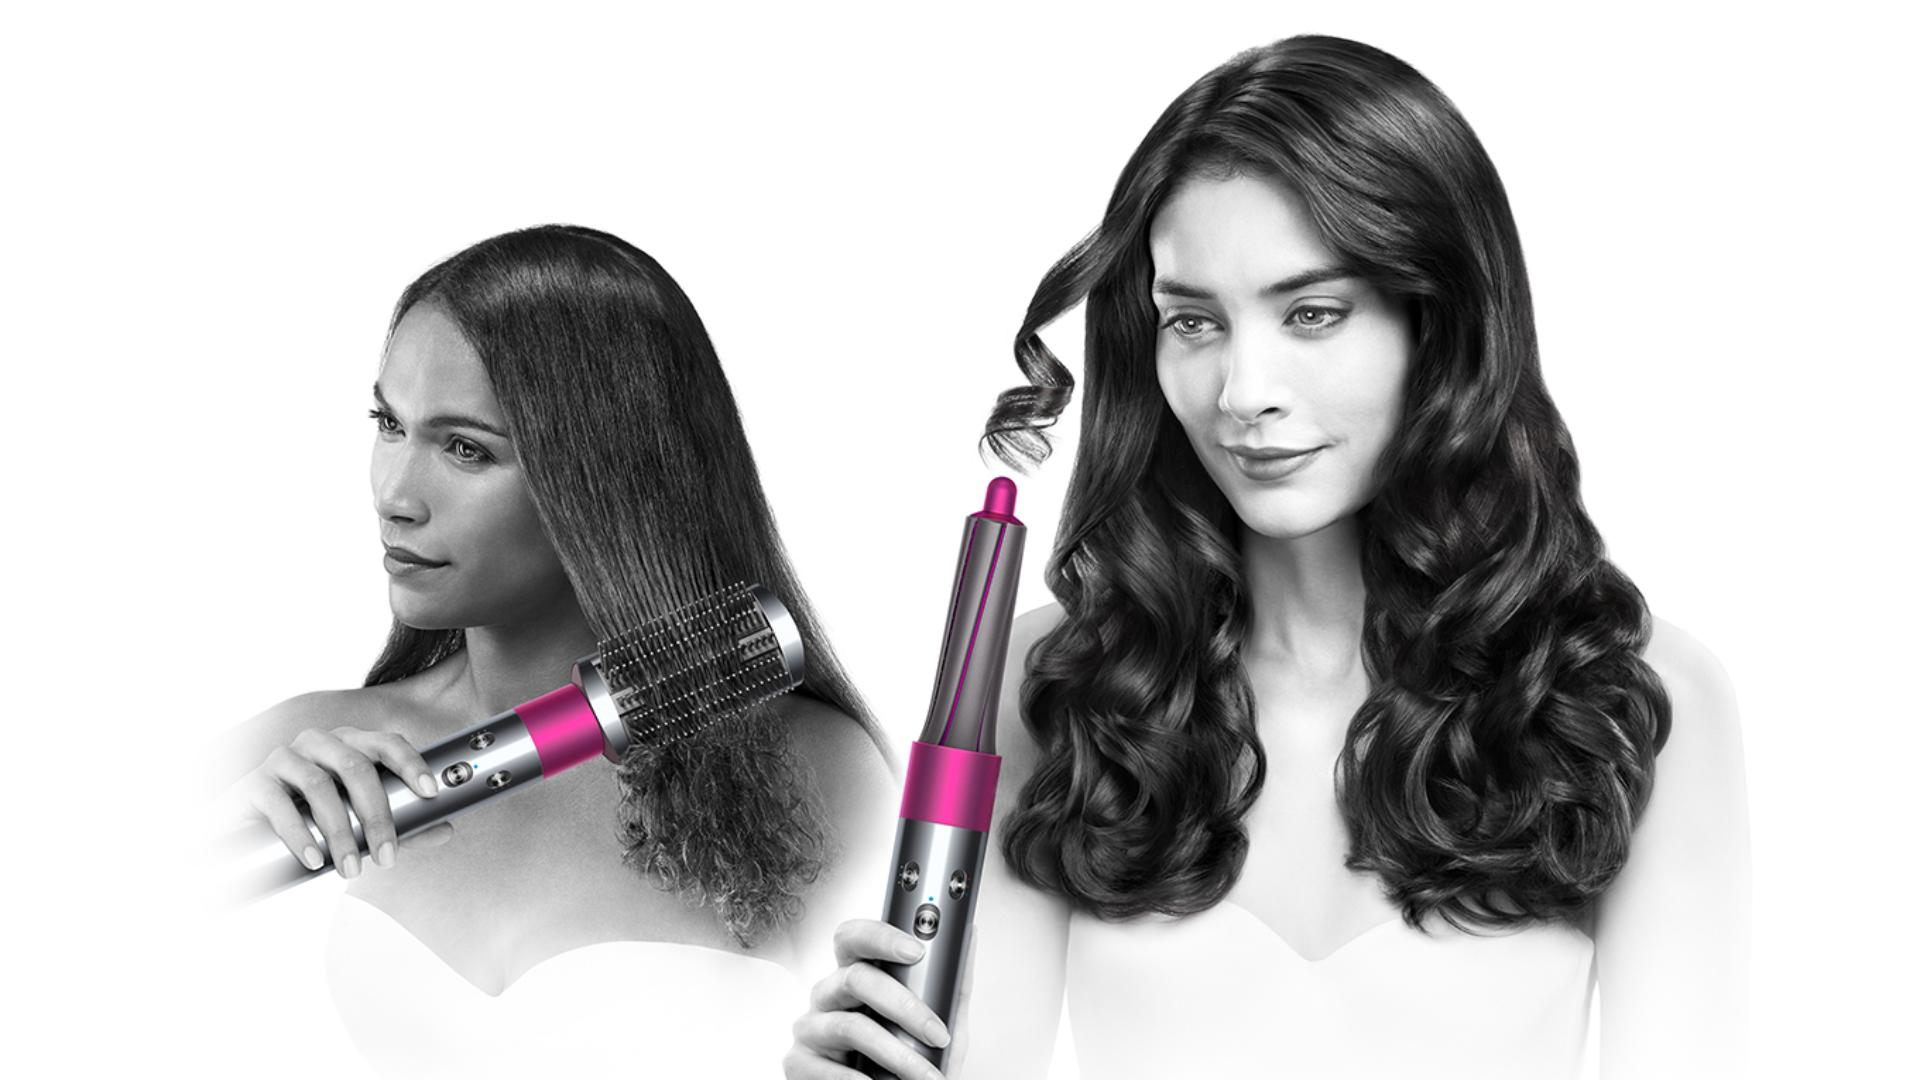 Two models using Dyson airwrap styler smooth and control with different attachments